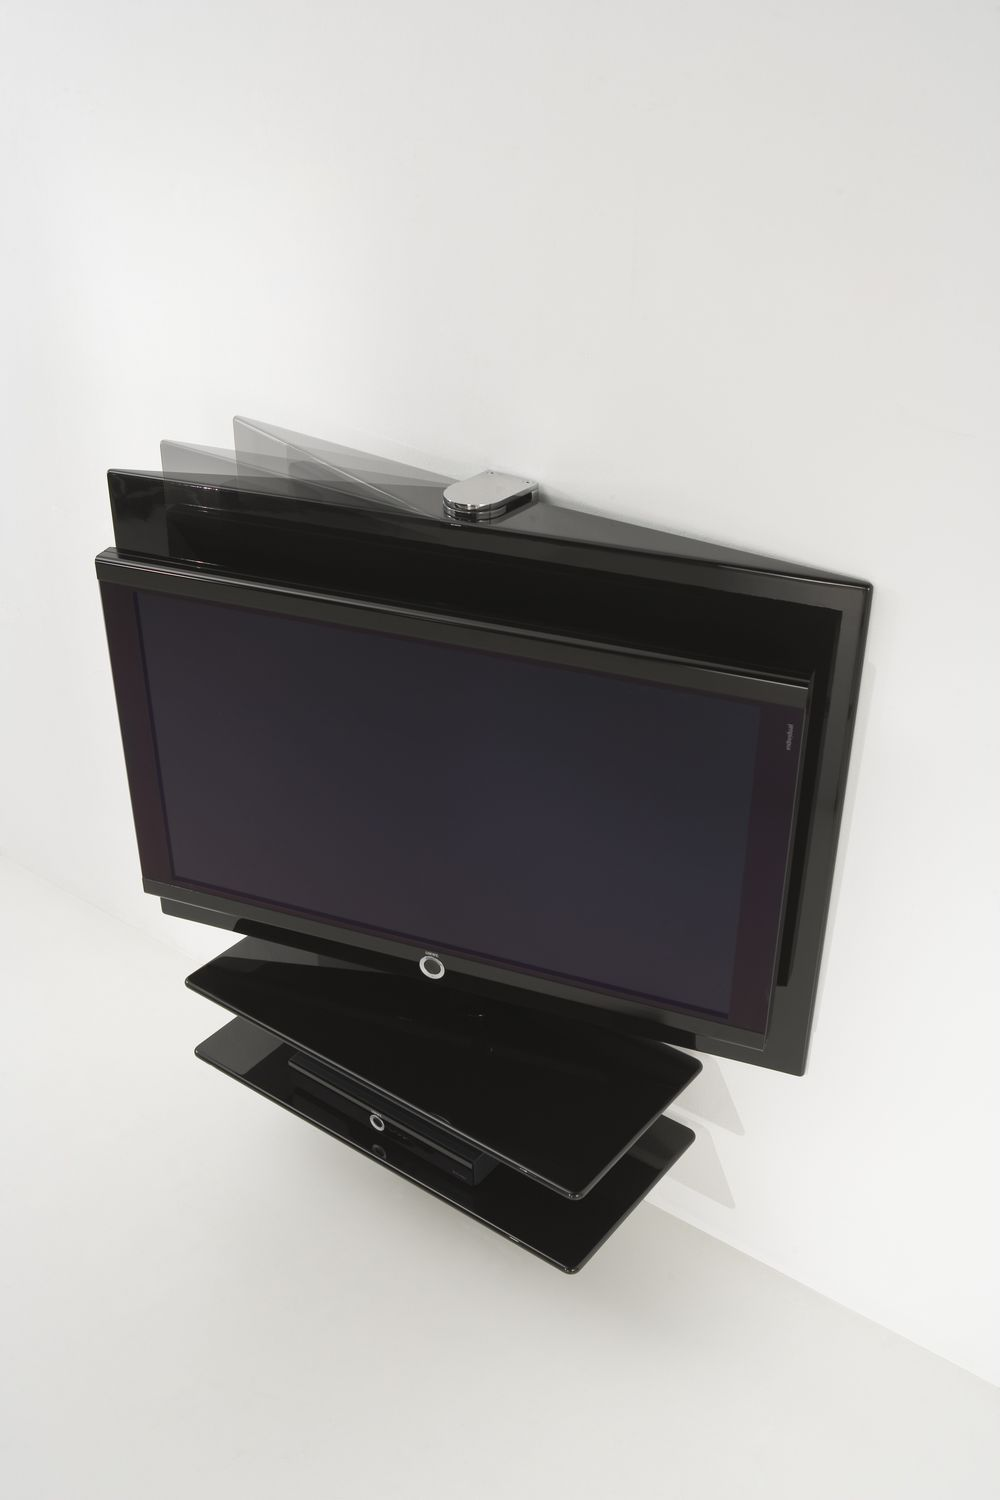 Mueble tv pared giro mbit for Mueble tv pared